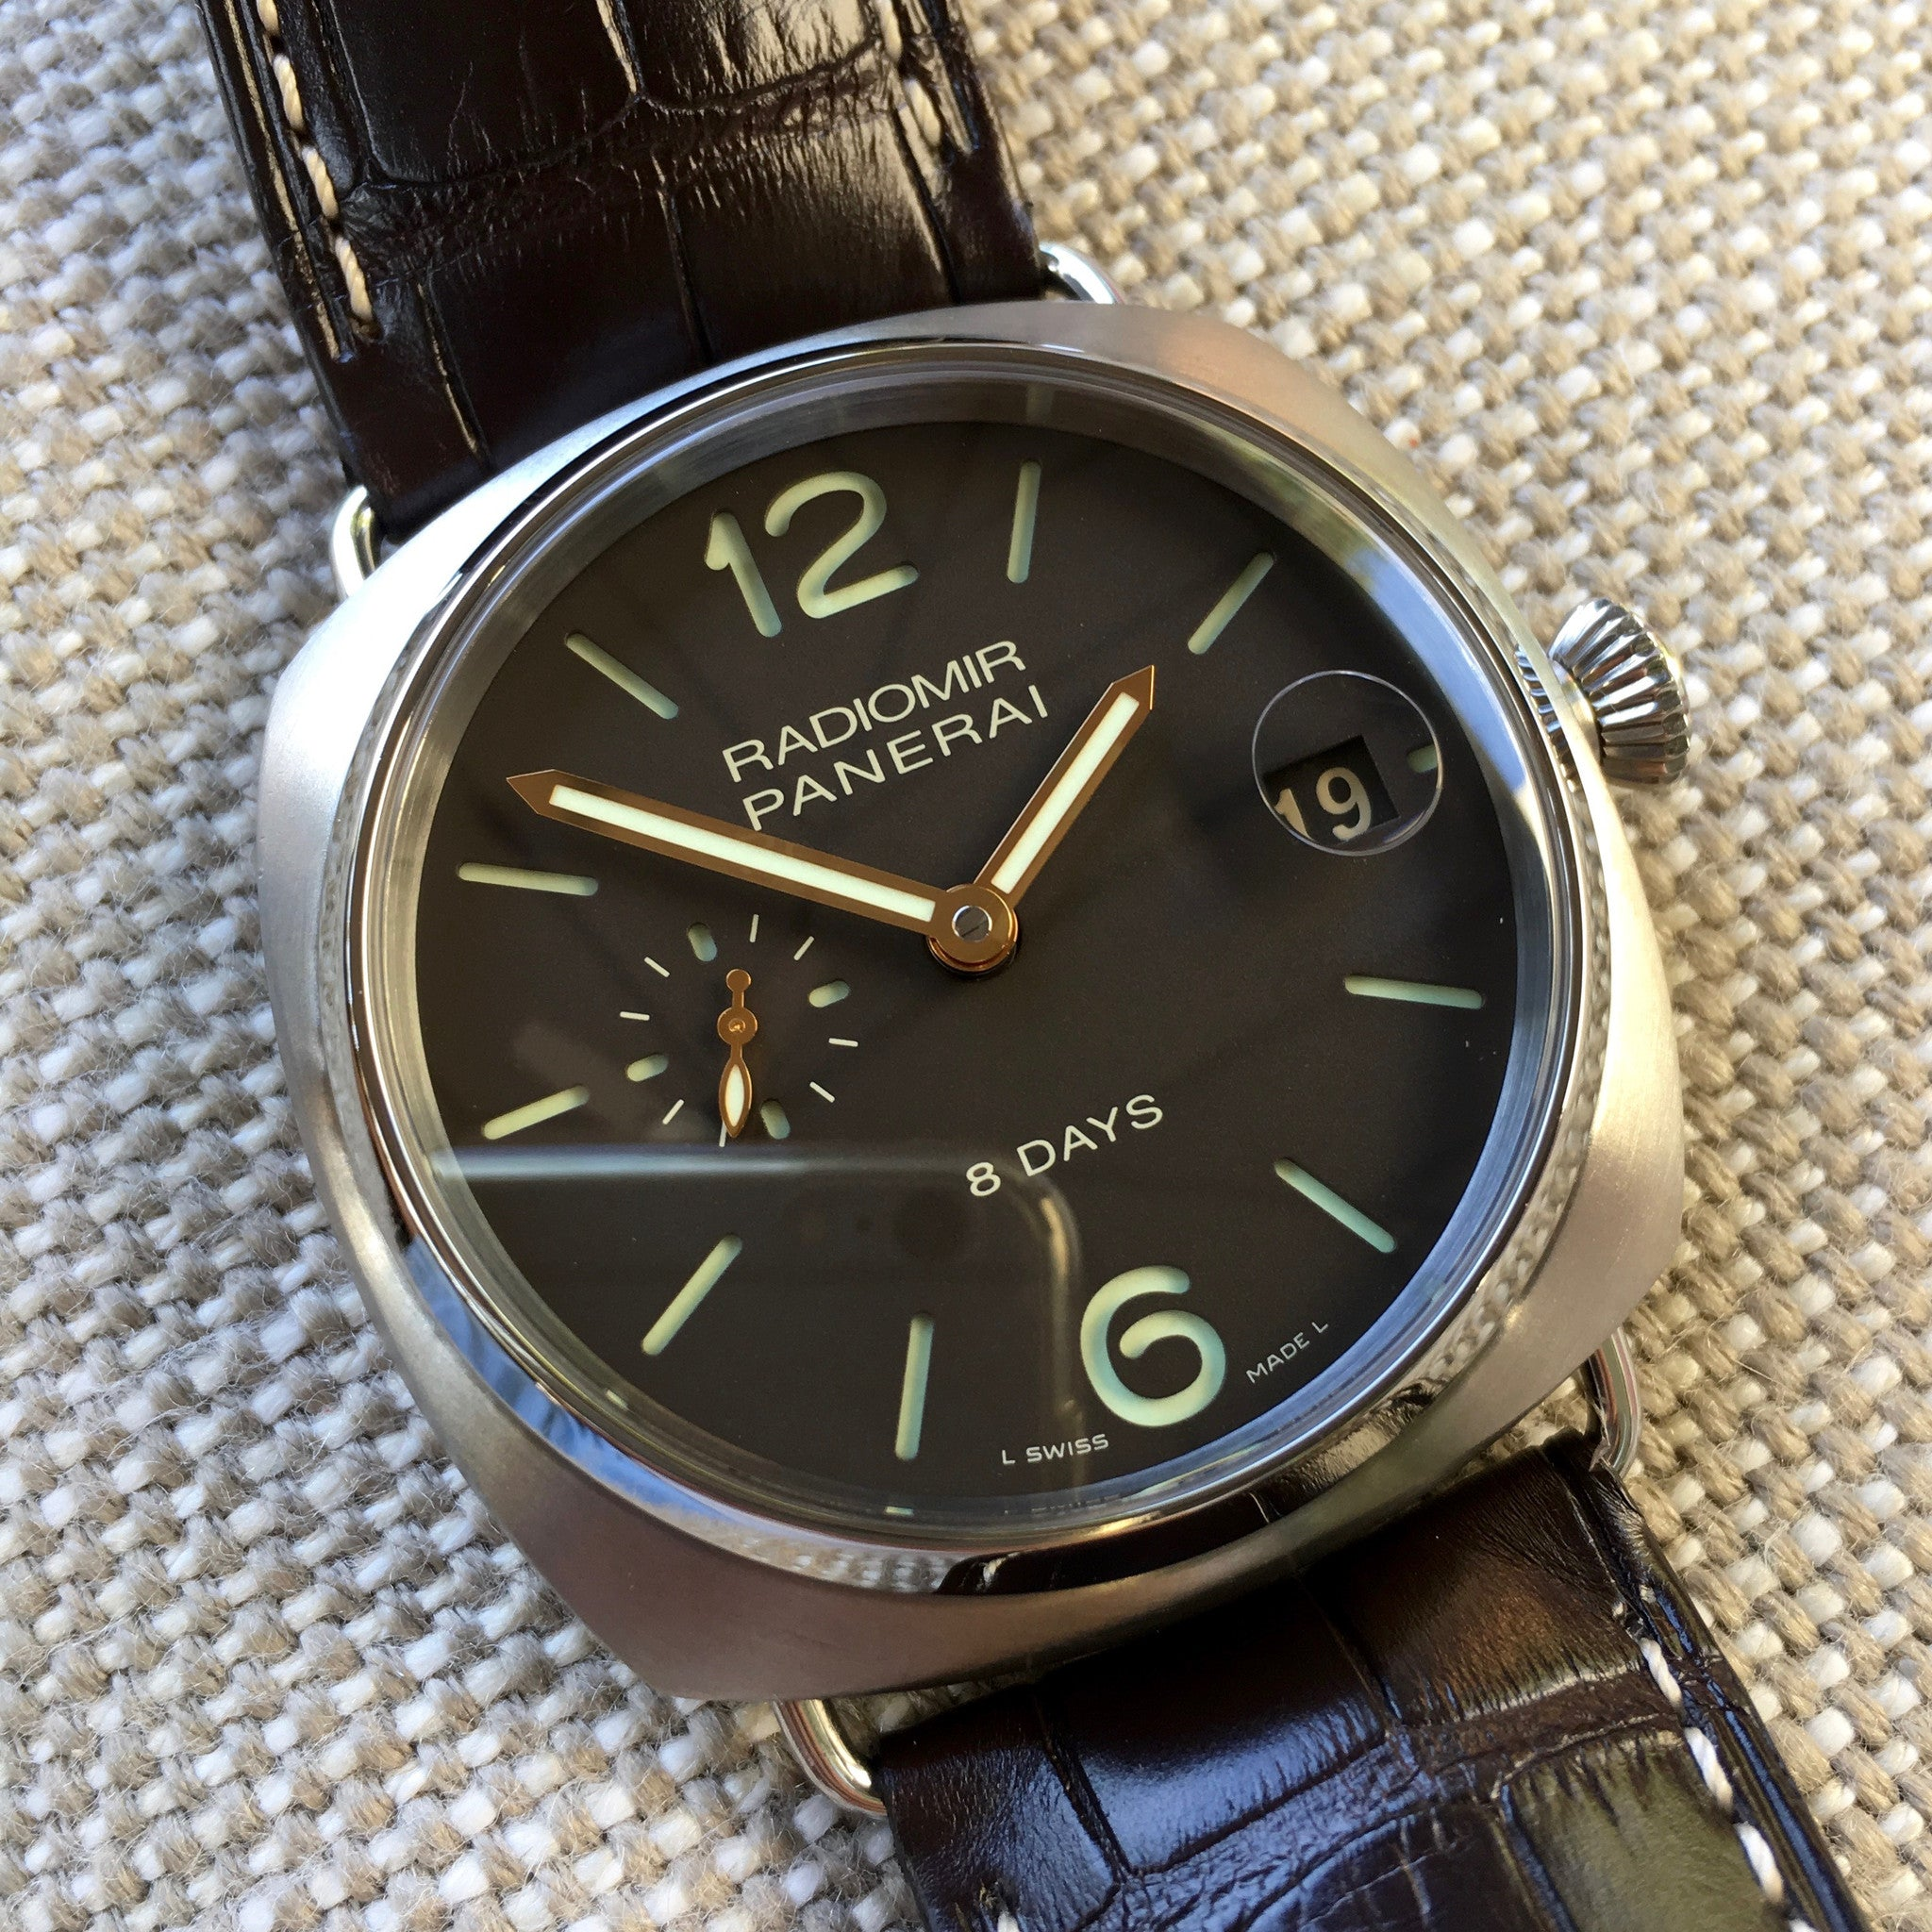 Panerai Radiomir PAM 346 Titanium 8 Days 45mm Brown Leather Wristwatch - Hashtag Watch Company